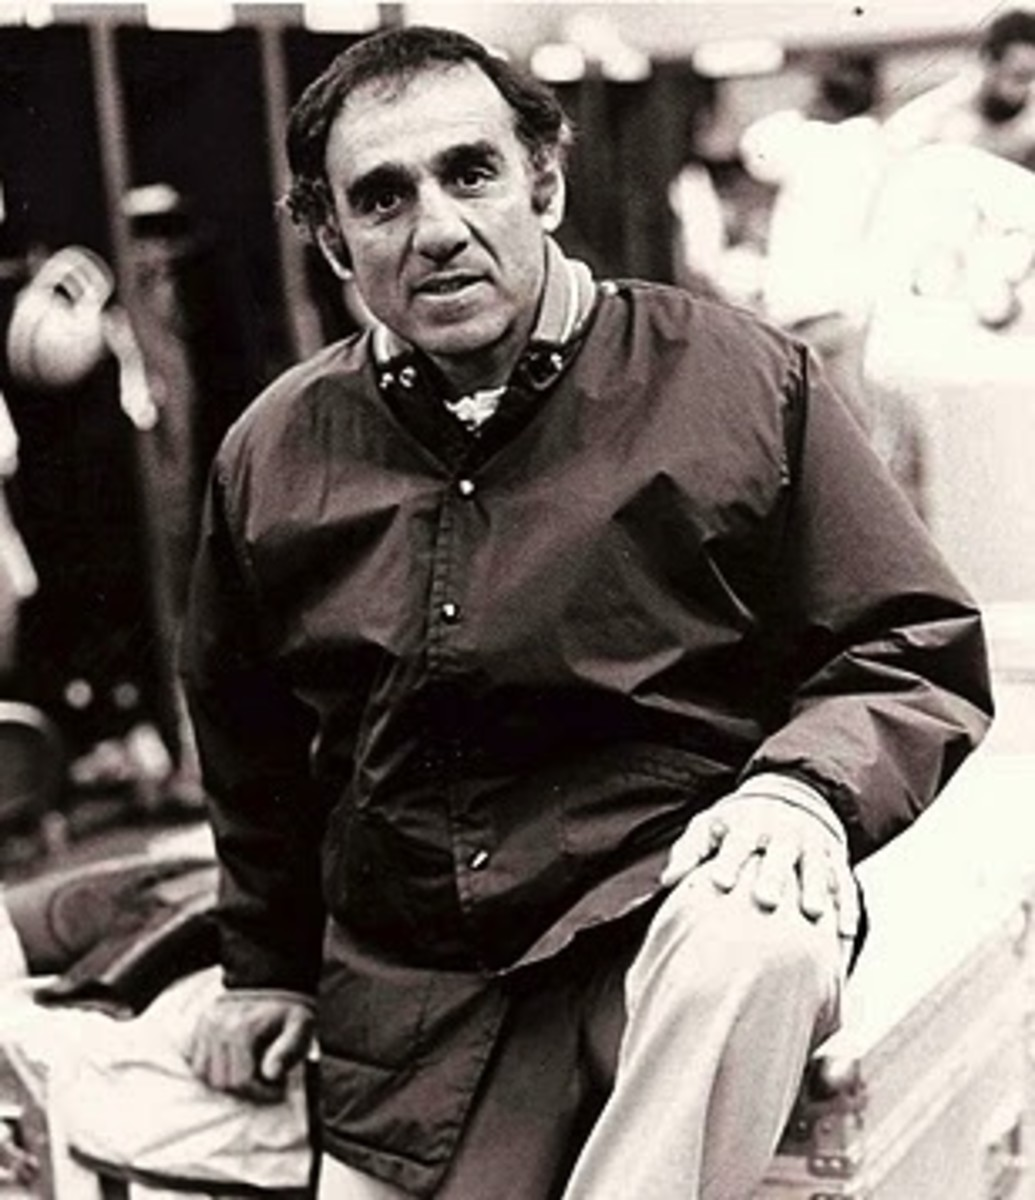 Former Cleveland Browns head coach, Sam Rutigliano, is seen in the locker room during the 1979 season. By finishing the year at 9–7, it was Rutigliano's first winning season at the helm of the Browns.